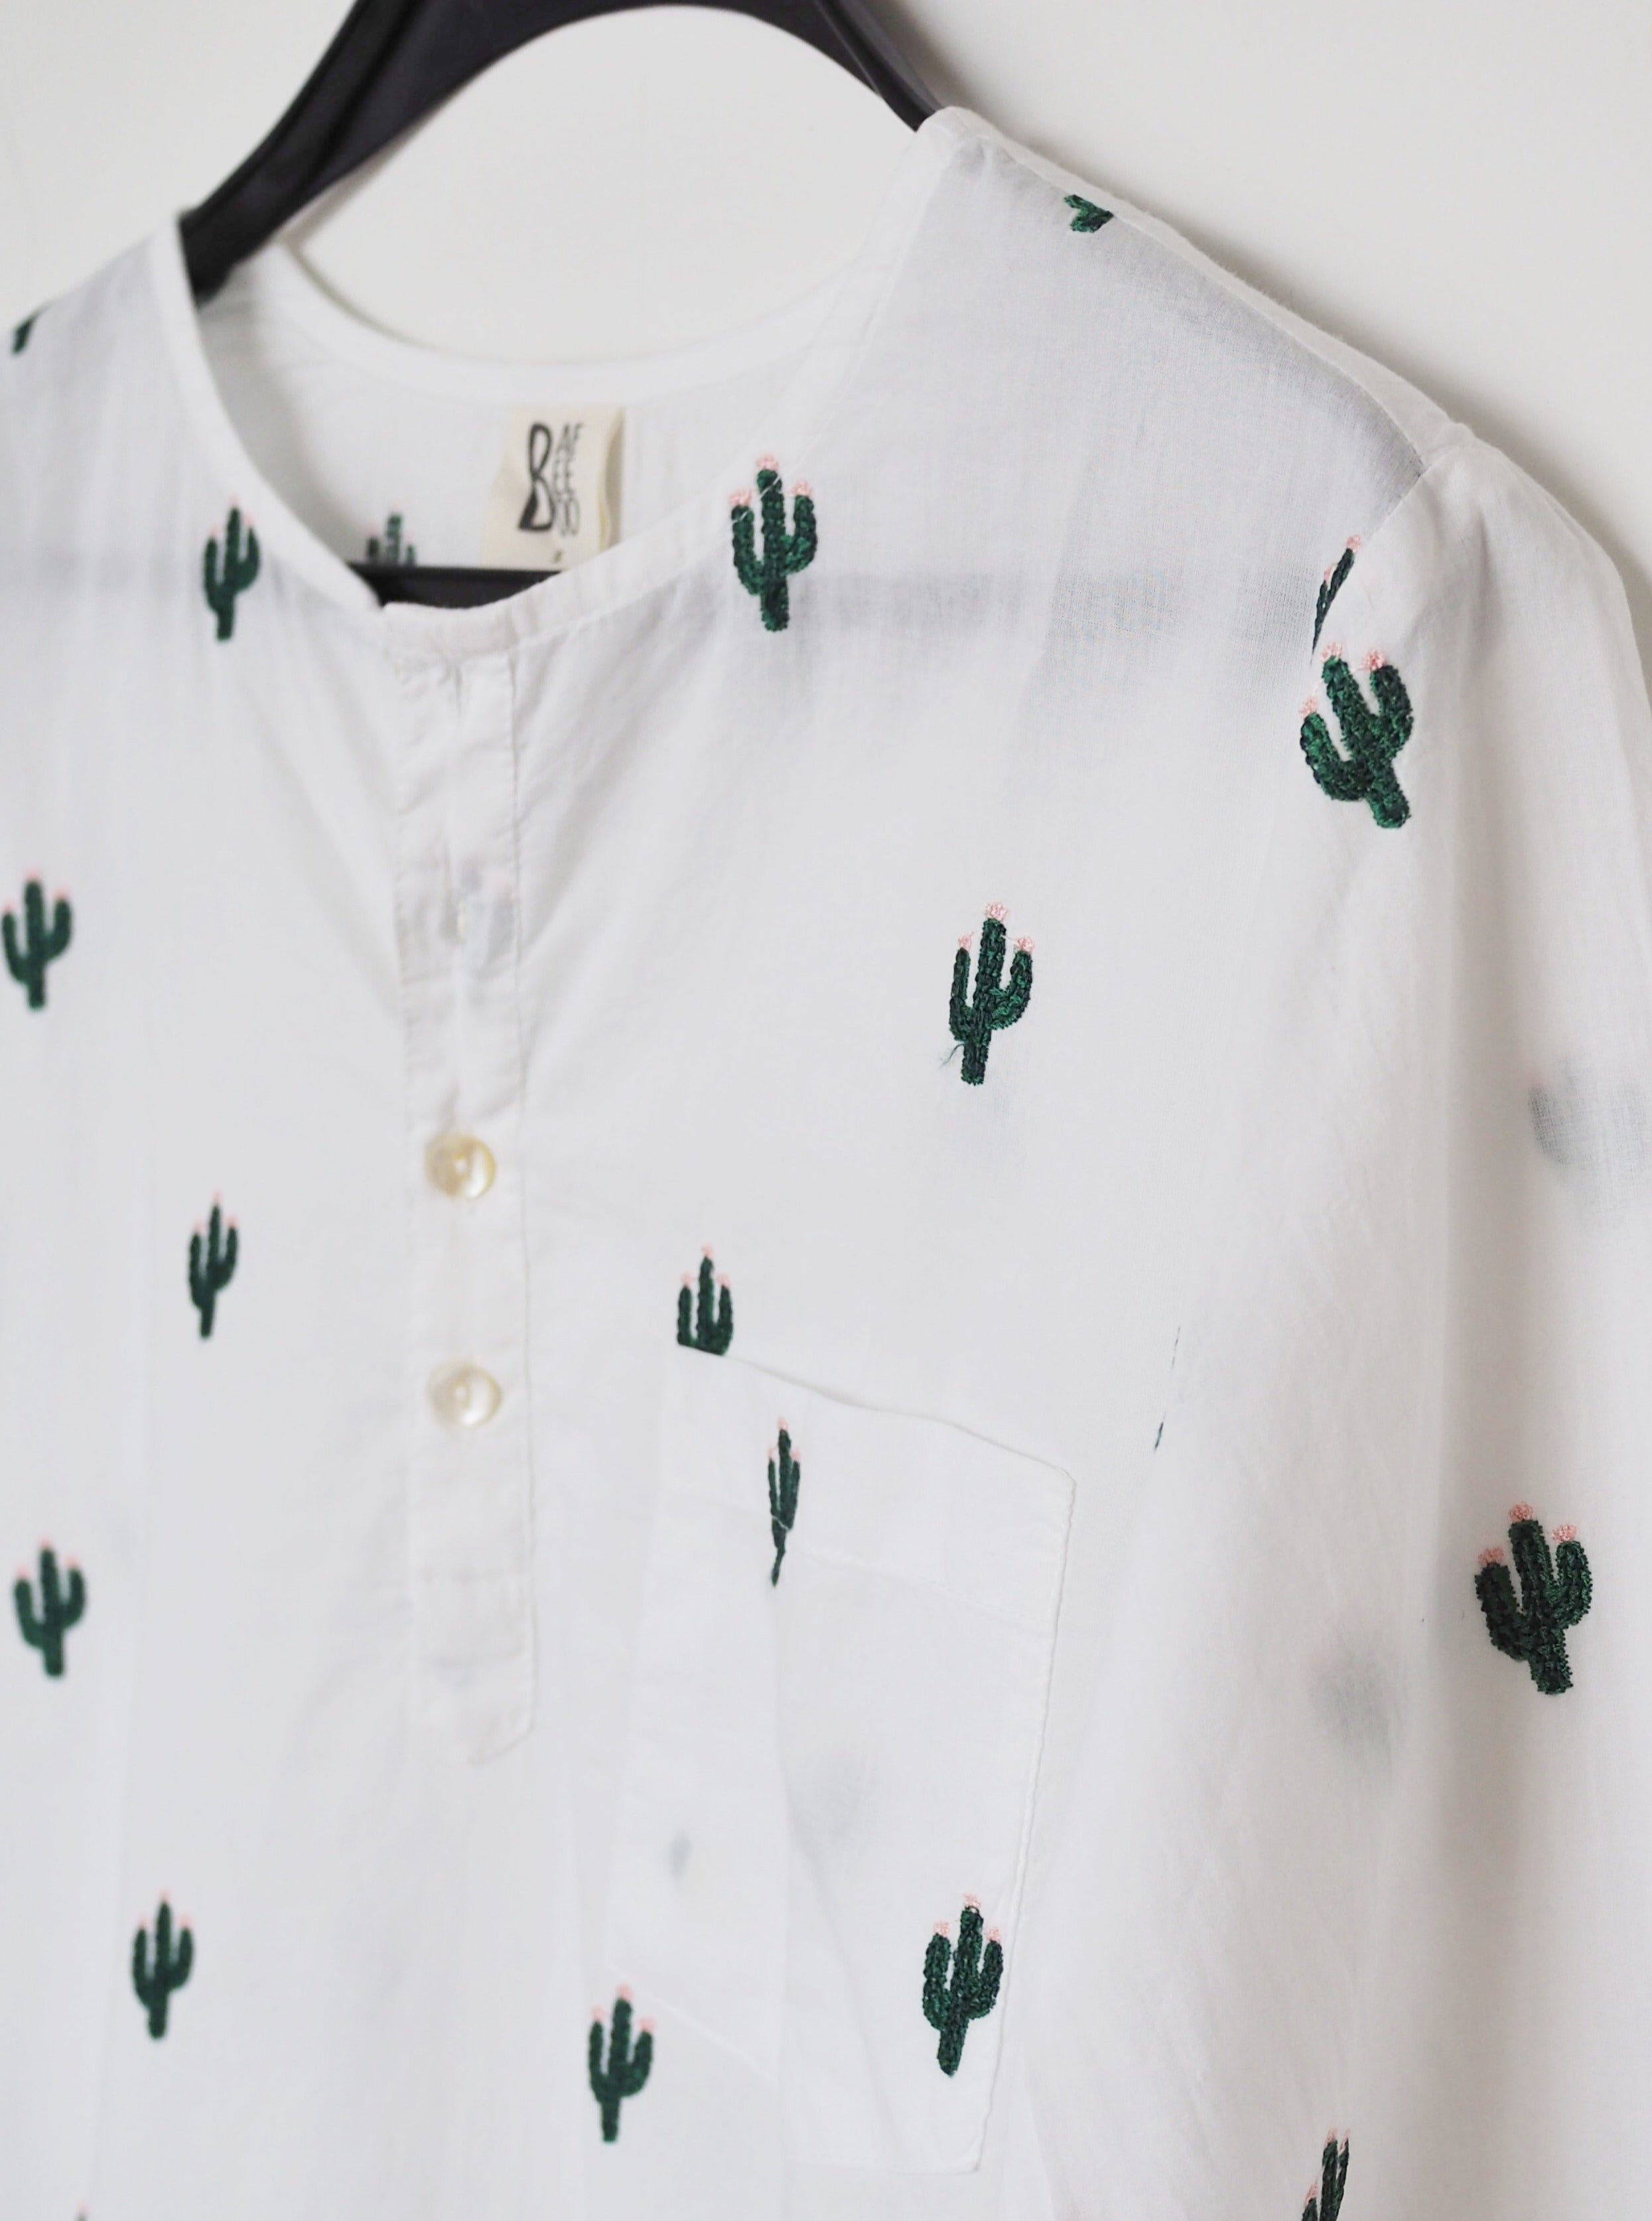 cotton shirt, shirt, men's shirt, cactus, cactus shirt, embroidery, give back, twinning, father and son, mother and daughter, cotton shirt, made in india, baebeeboo